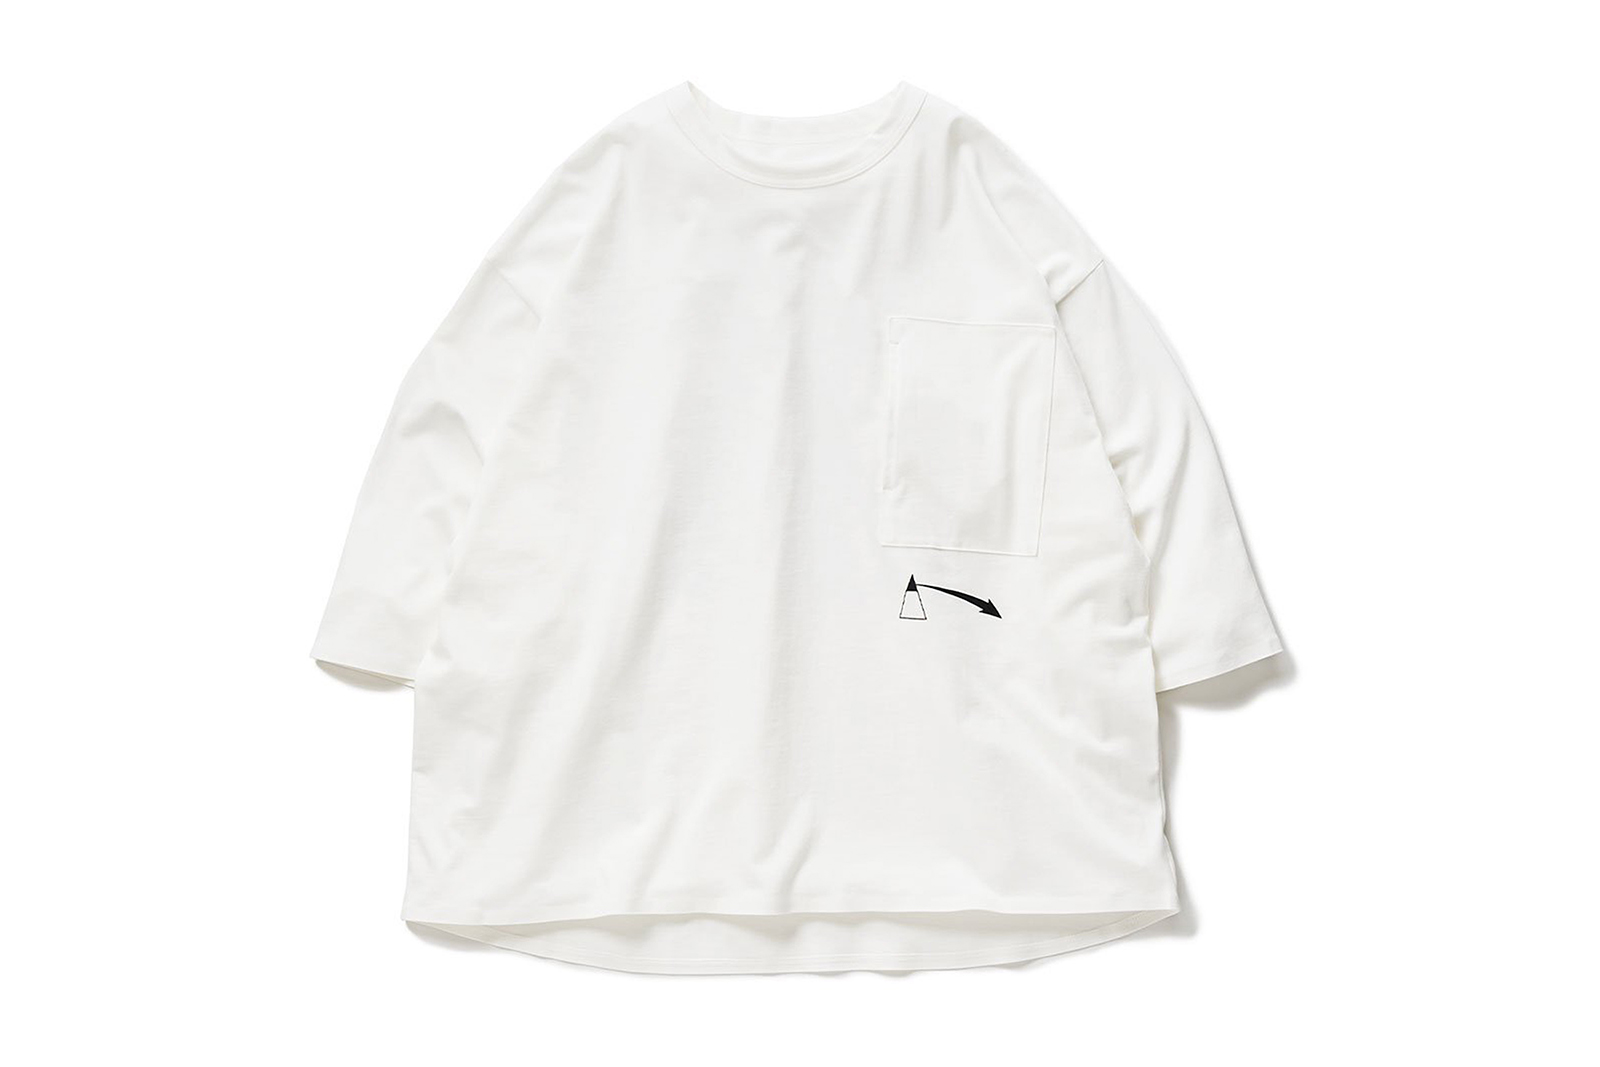 vs-7-sleeve-white_p2